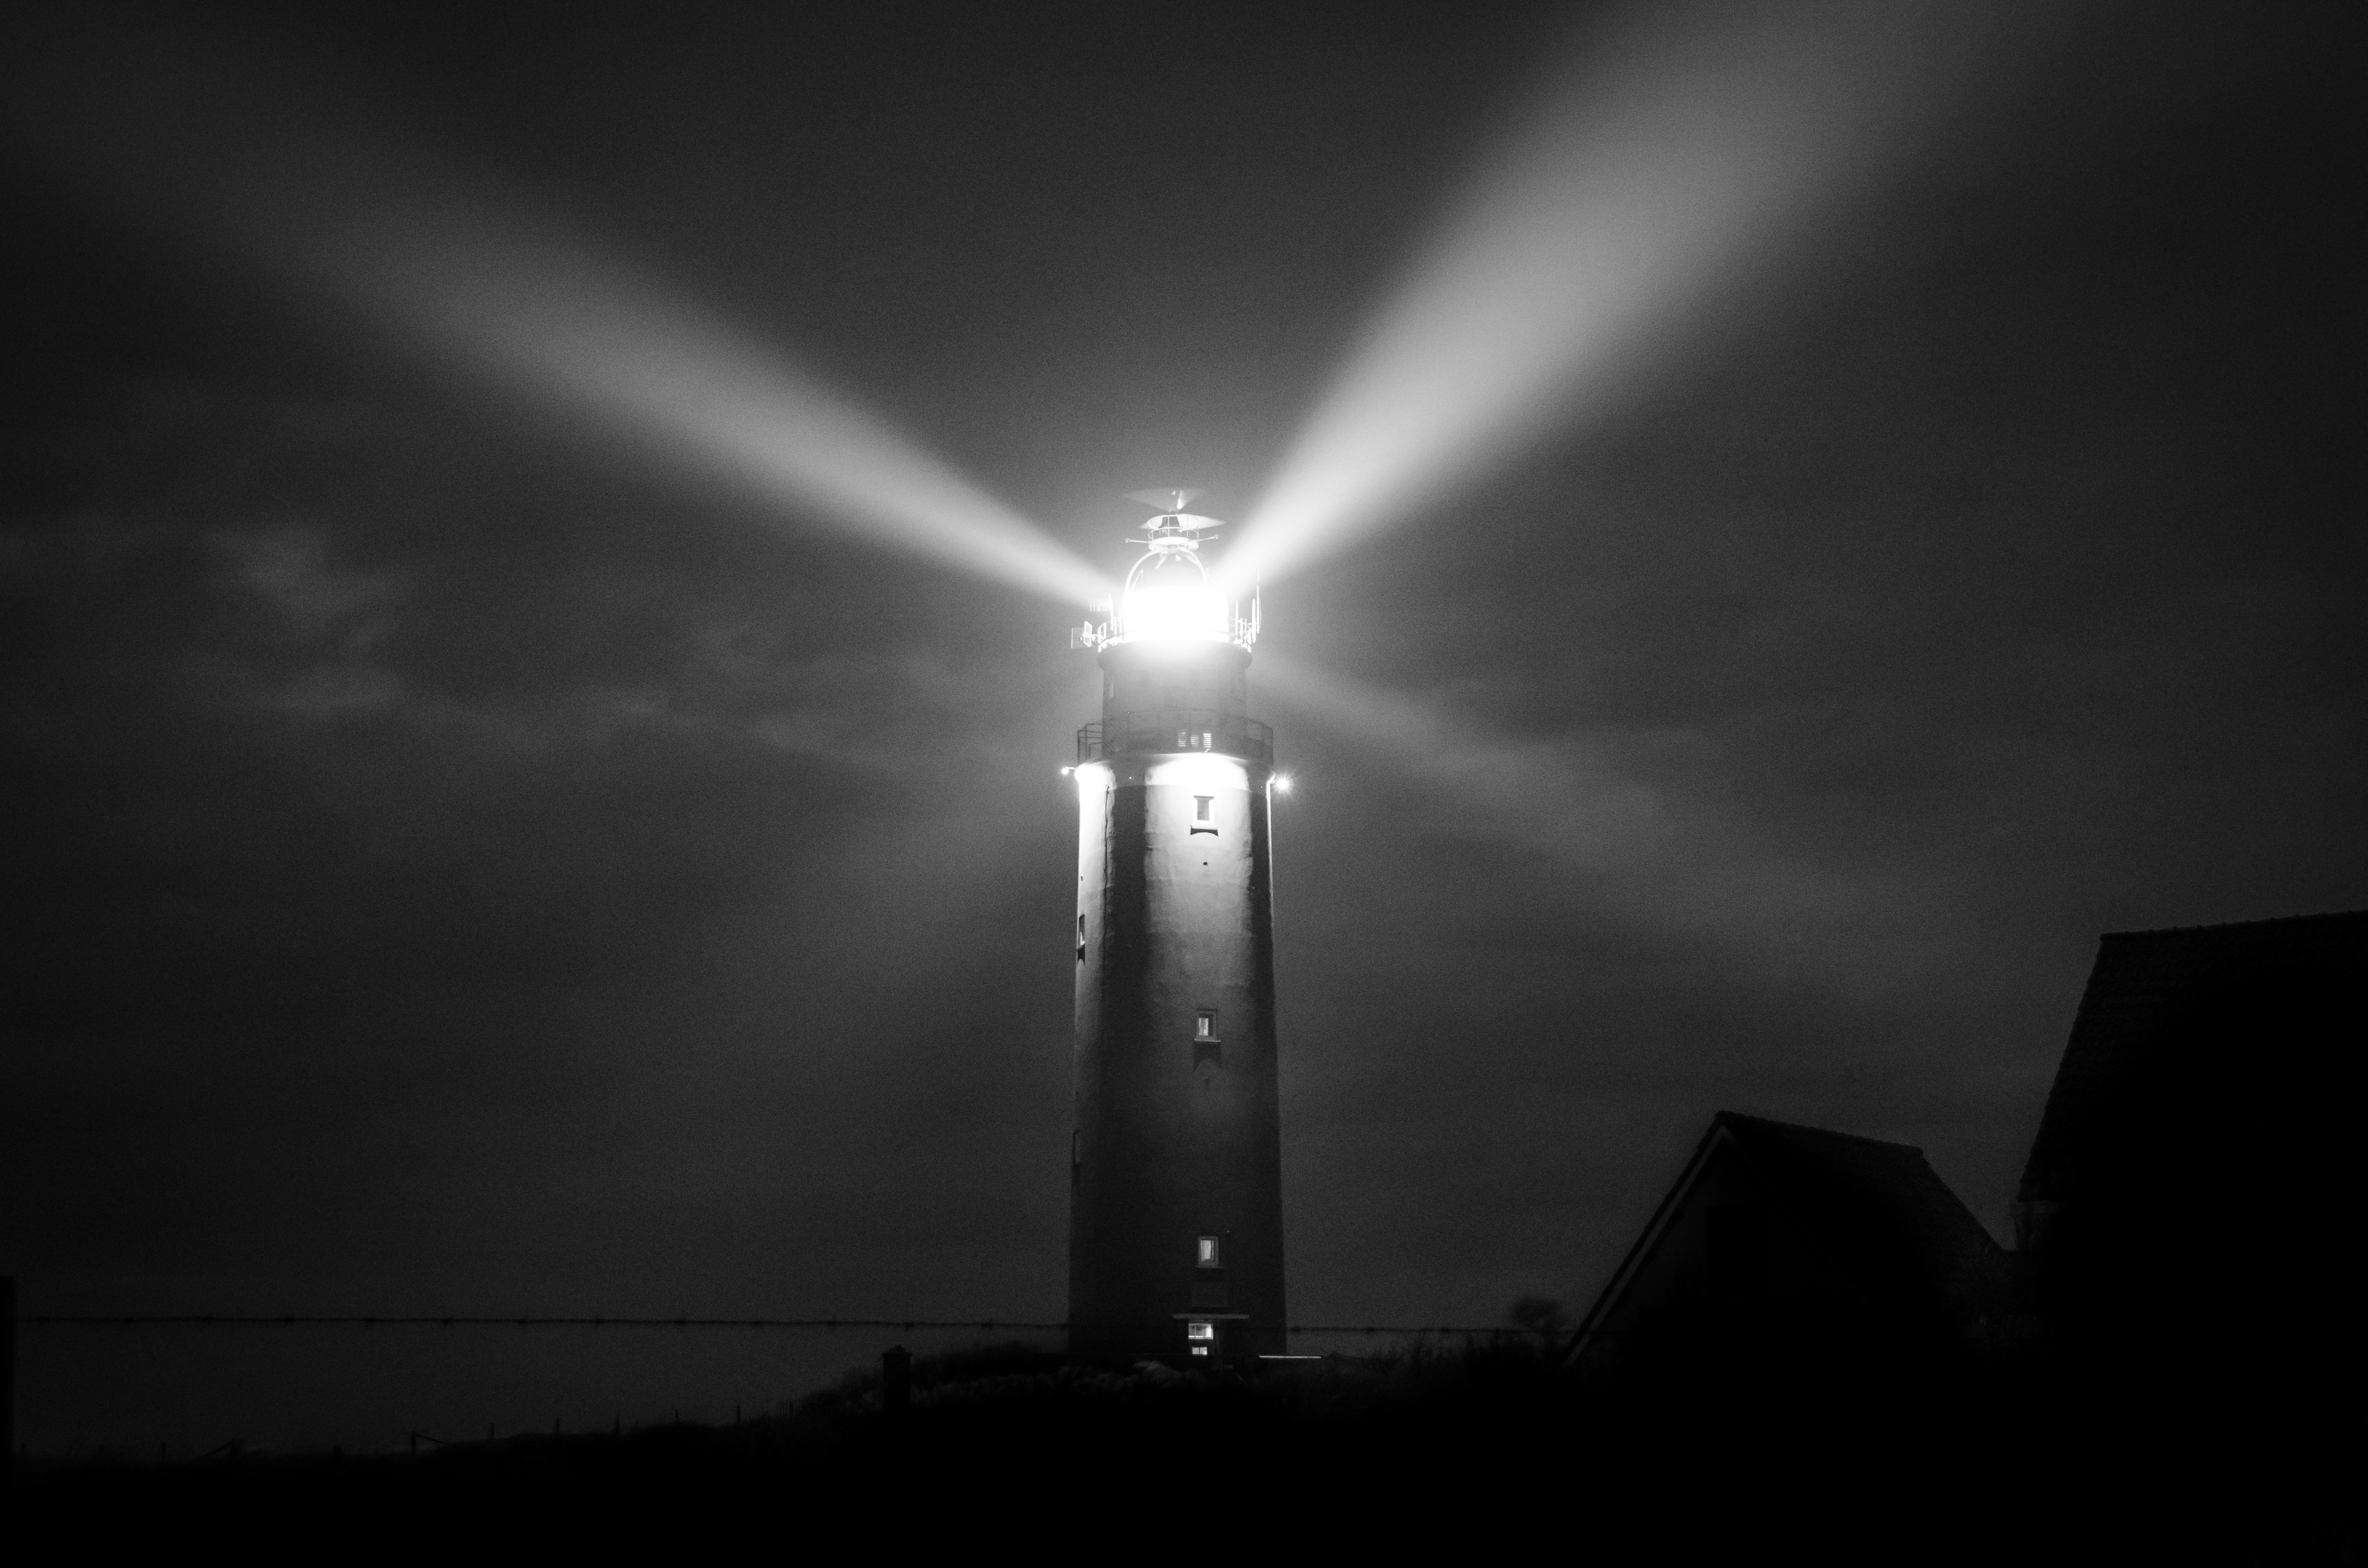 Gray Scale Photography of Lighthouse · Free Stock Photo